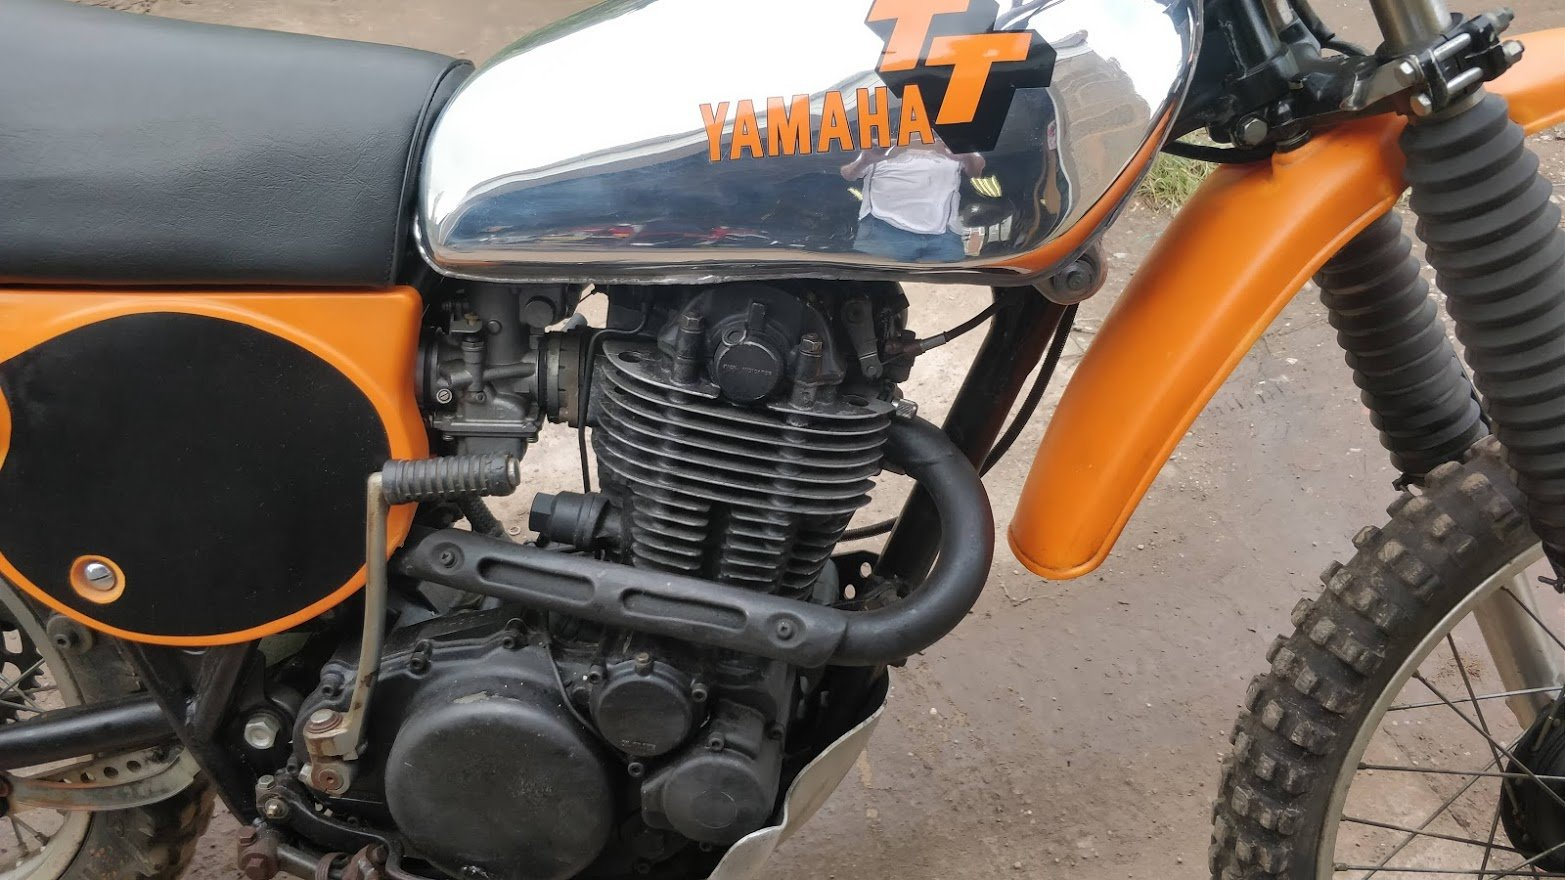 1977 Rare Yamaha TT500 (like XT500) with road lights For Sale (picture 2 of 6)